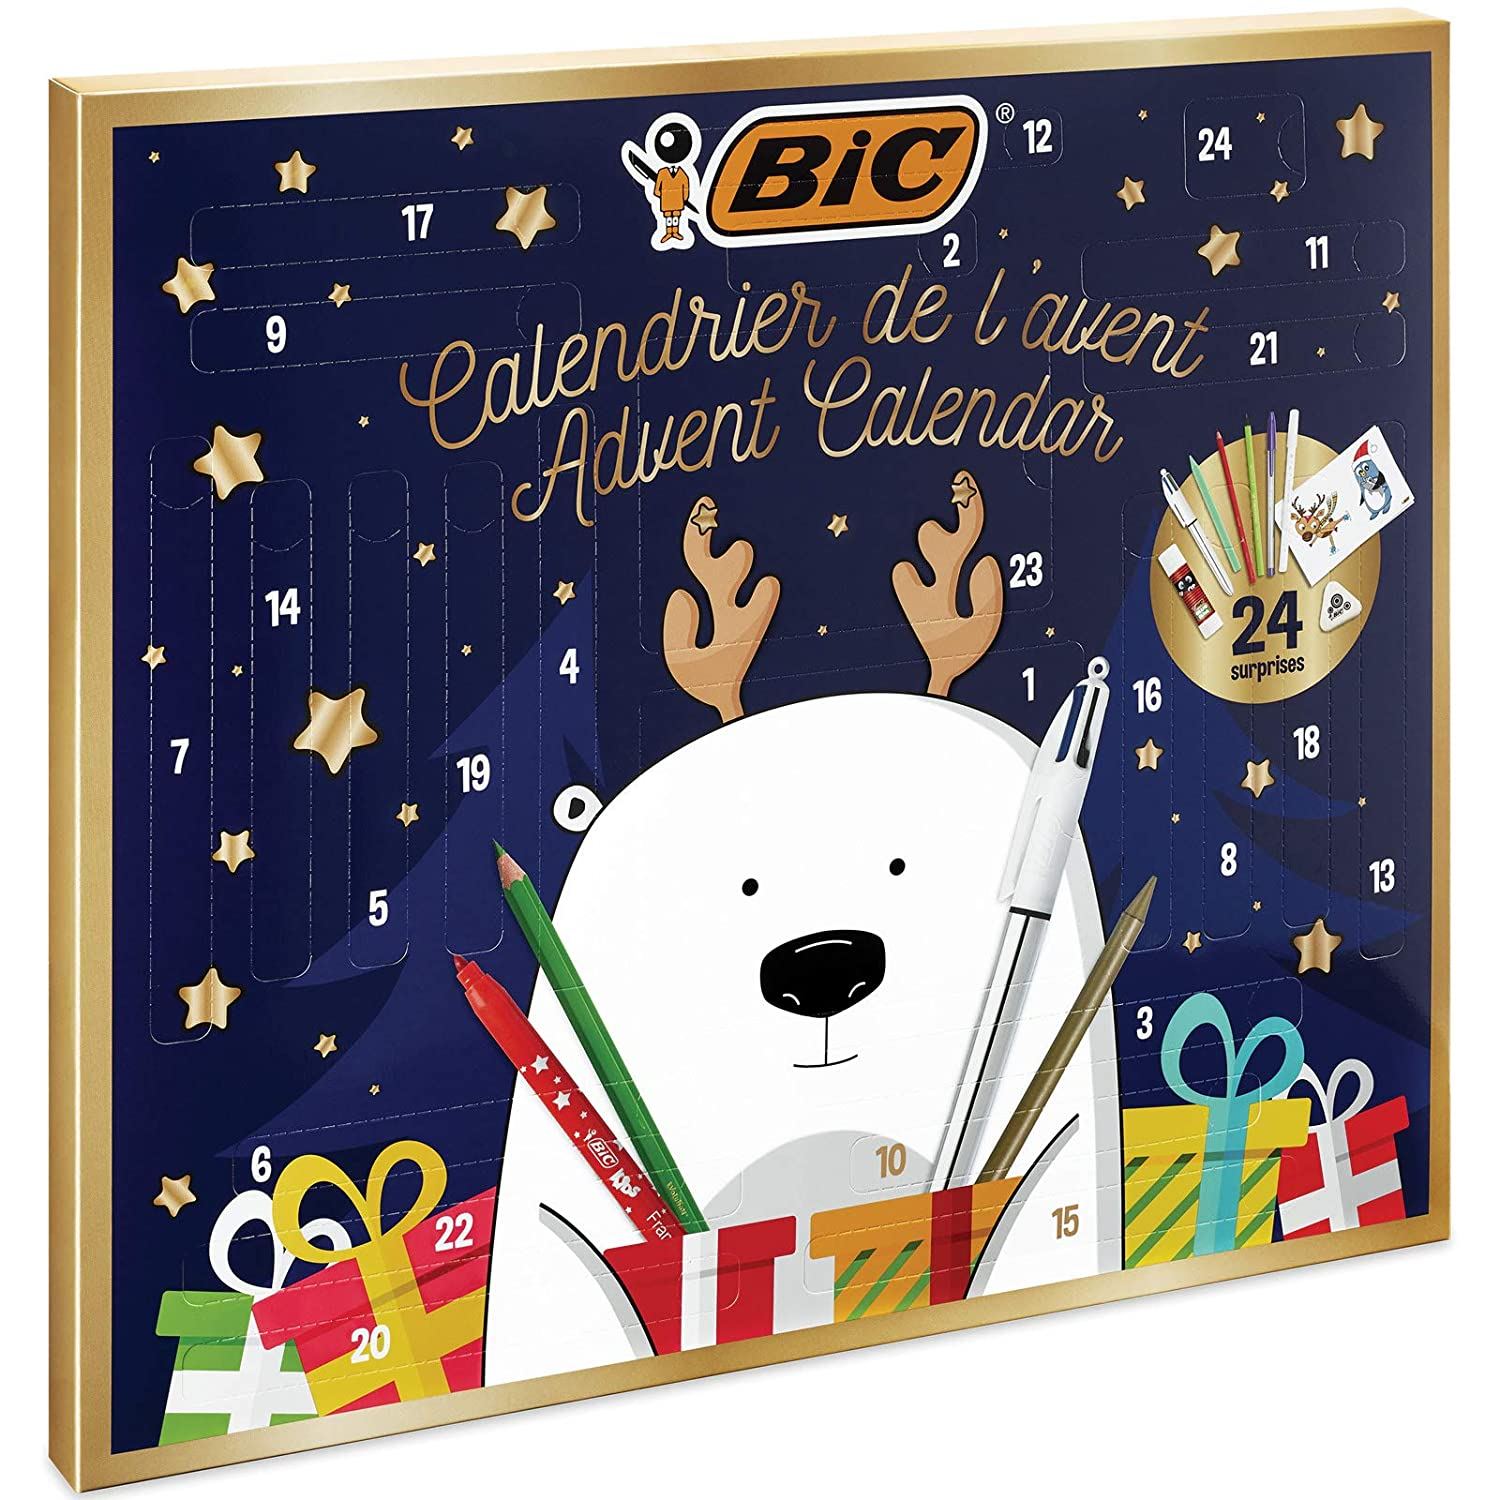 BIC Advent Calendar - 24 Writing Products, 6 Magic Felt Pens/6 Coloured Pencils/4 Colouring Crayons/1 Glue Tube/1 Graphite Pencil/1 Eraser/3 Ball Pens, 24 Postcard & 20 Stickers to colour 961512